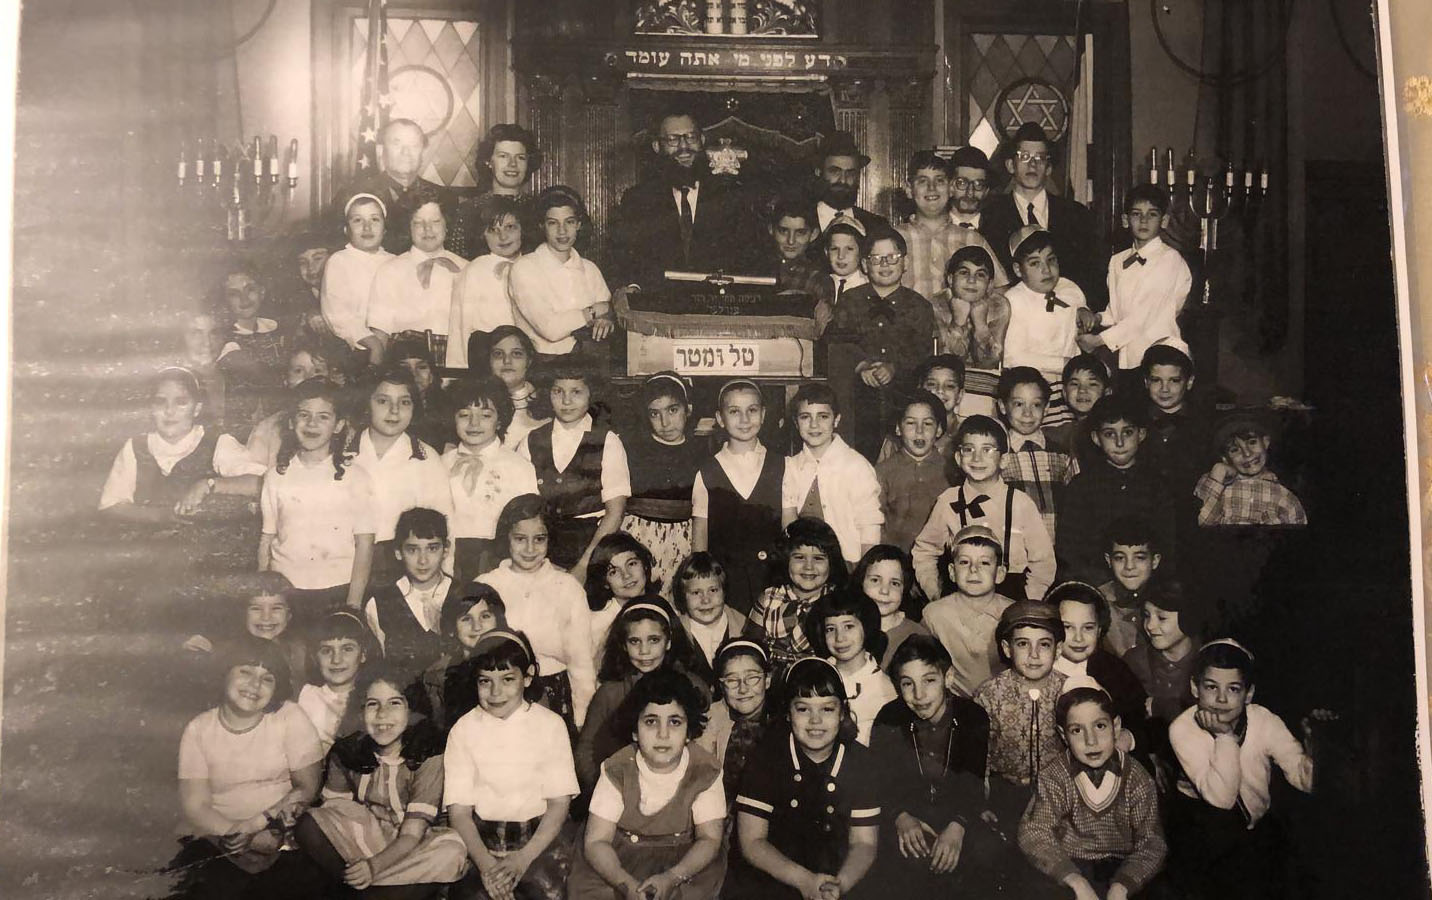 United Talmud Torah School Picture. The history of Brownsville Jewish community